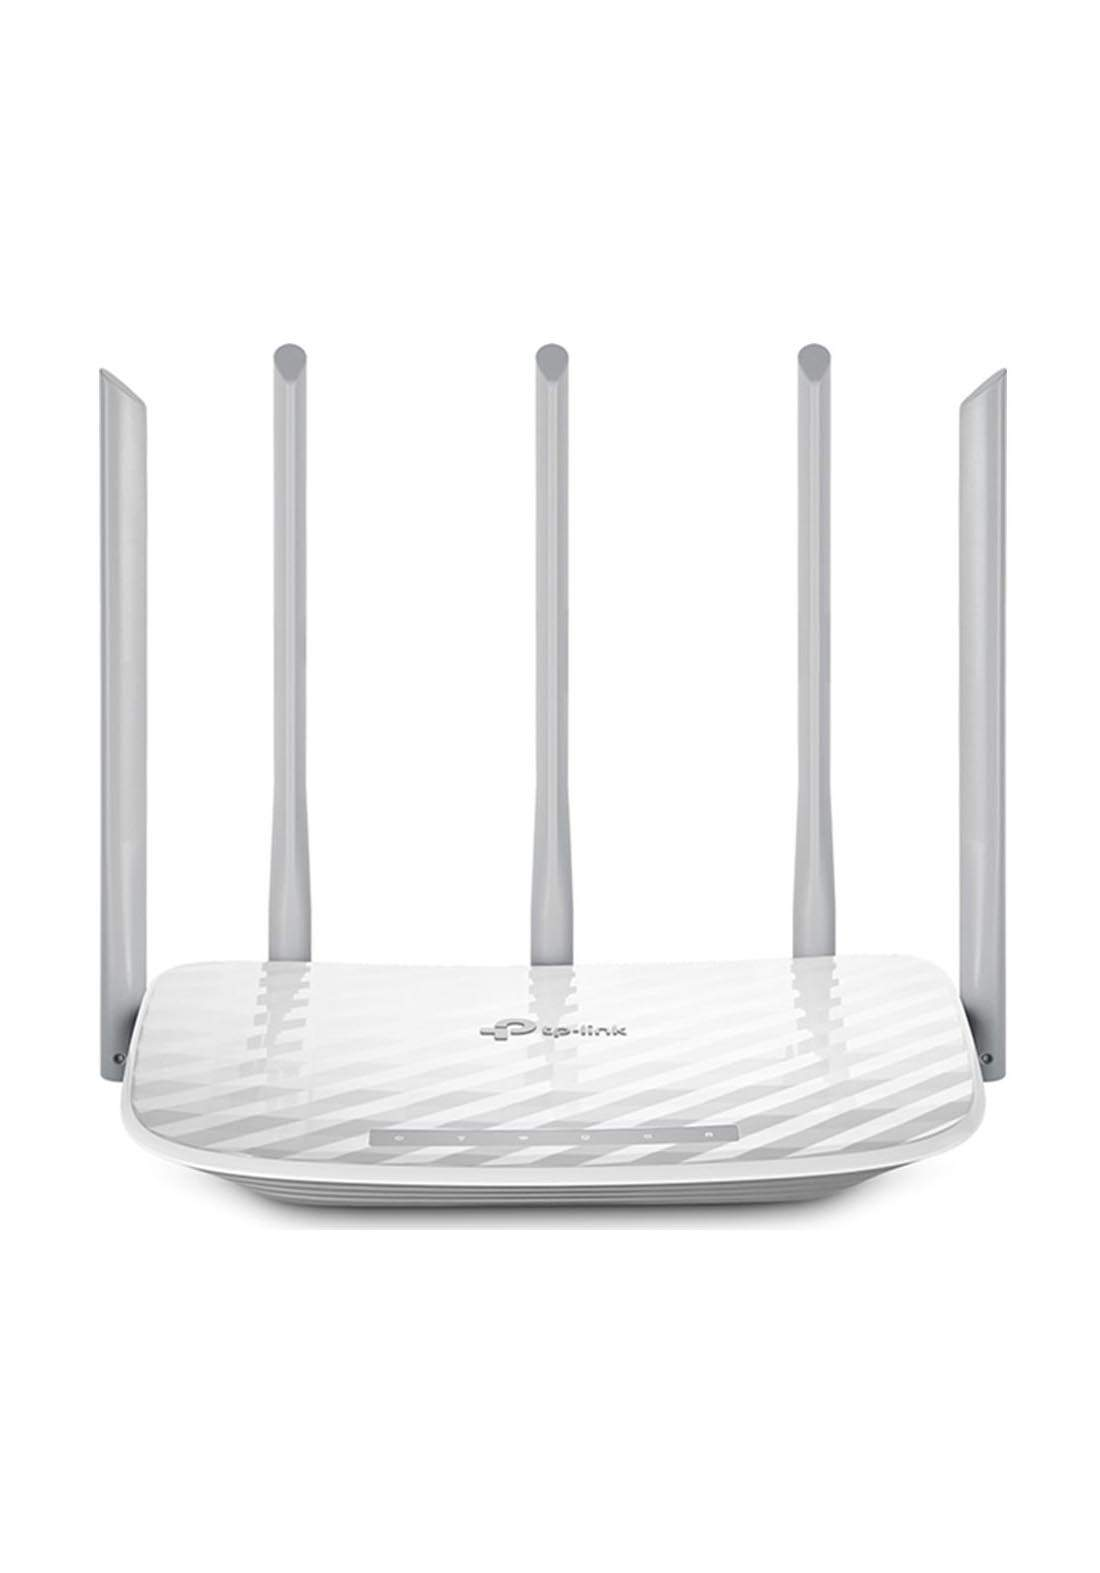 TP-Link AC1350 Wireless Dual Band Router Archer C60 - White